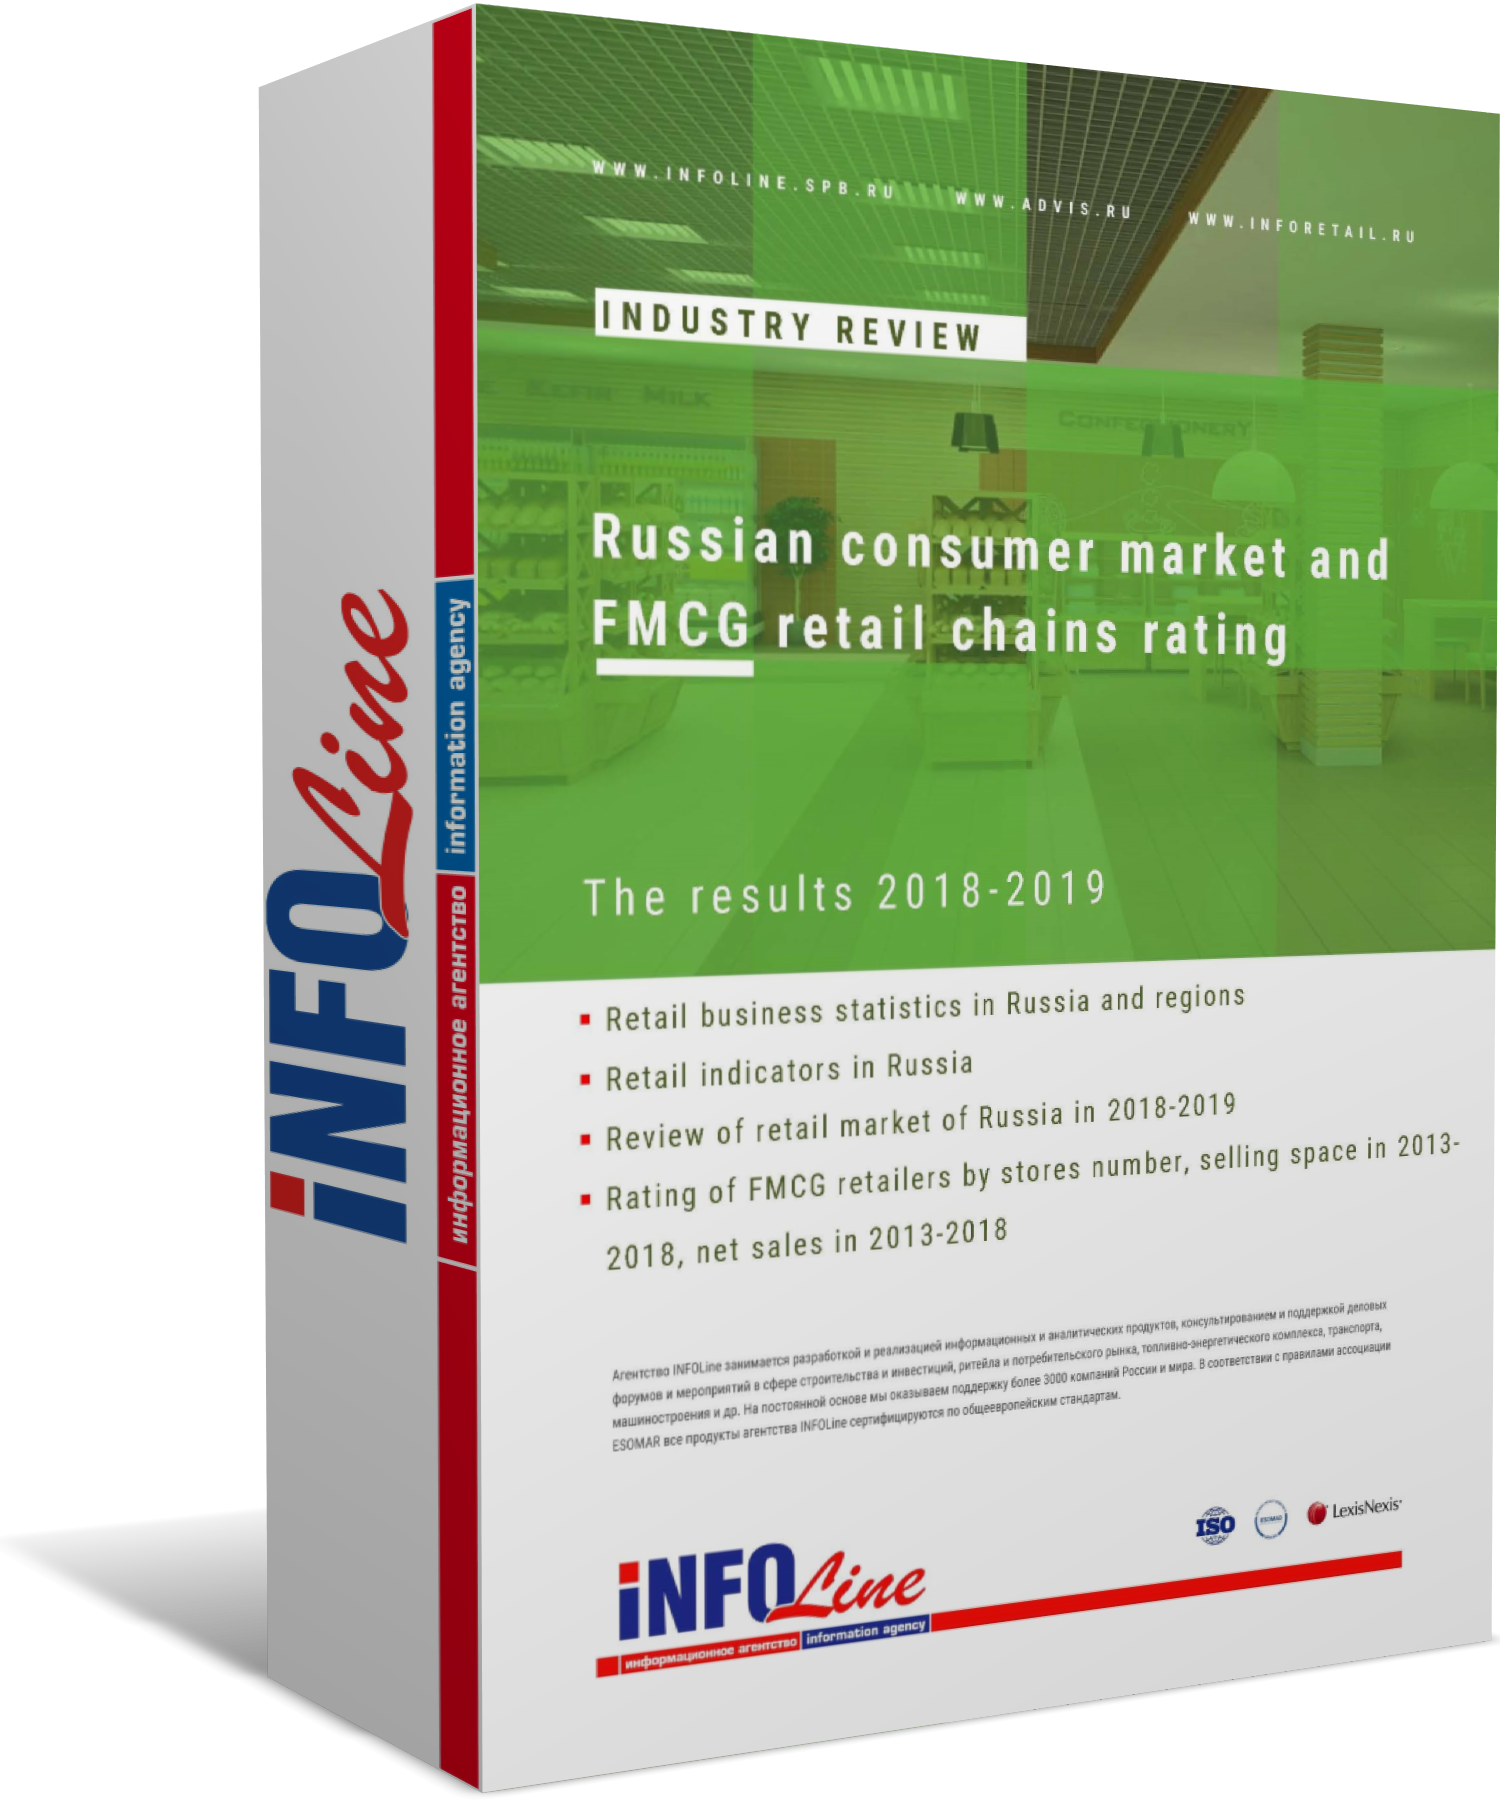 Russian consumer market and FMCG retail chains rating. The results of  2018-2019